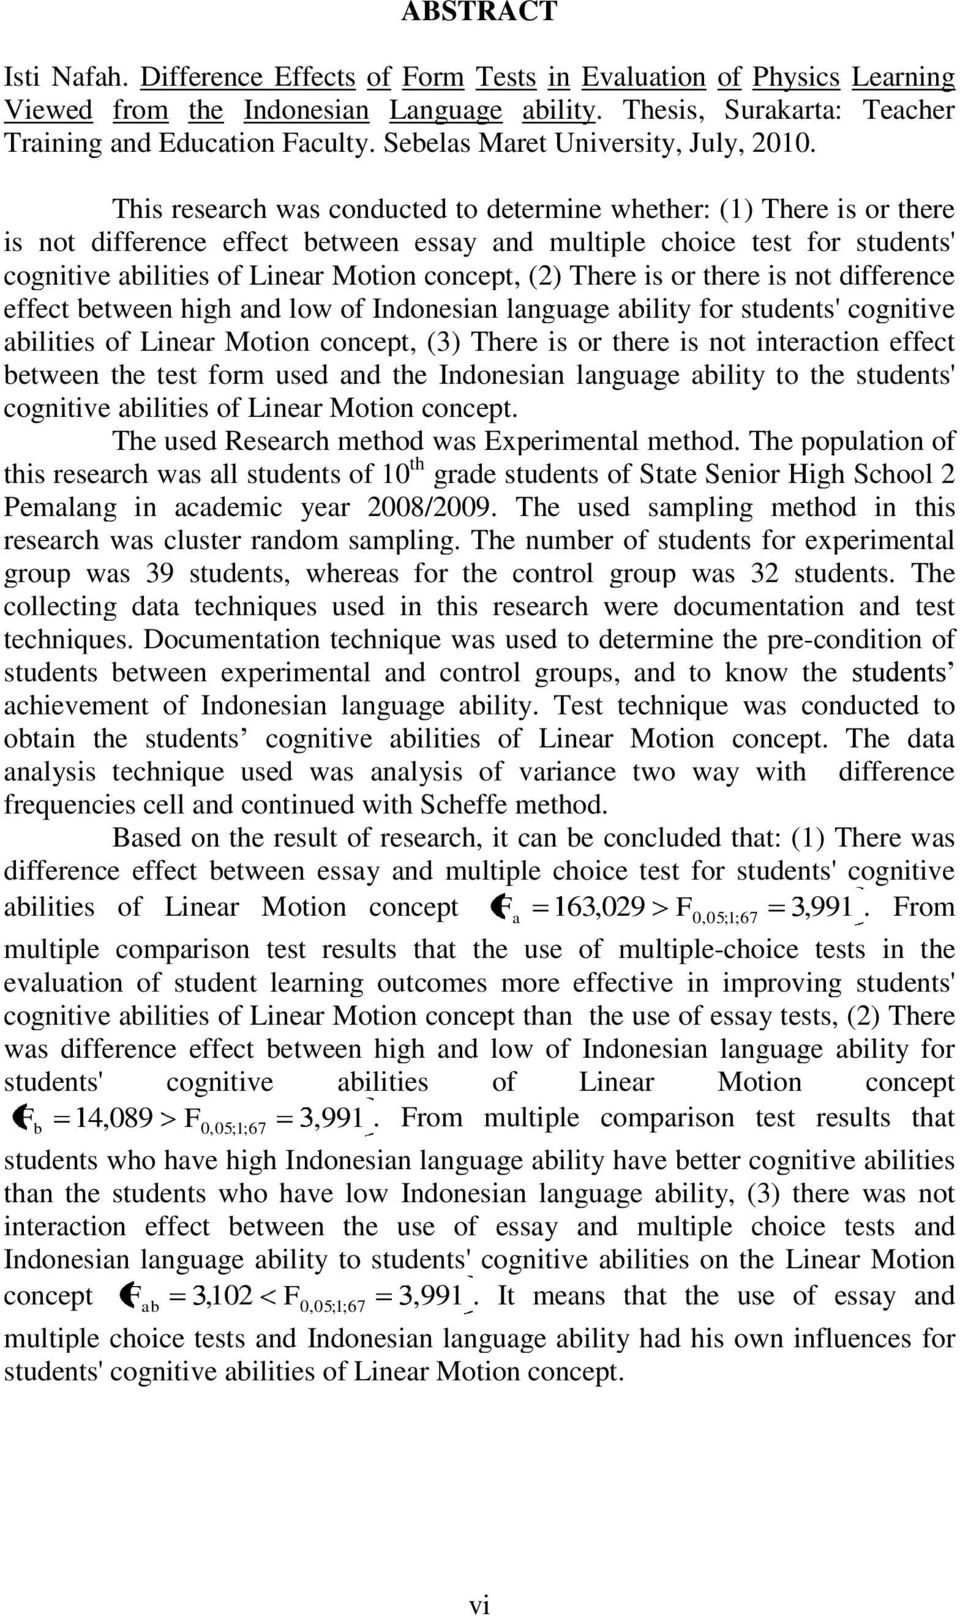 This research was conducted to determine whether: () There is or there is not difference effect between essay and multiple choice test for students' cognitive abilities of Linear Motion concept, ()